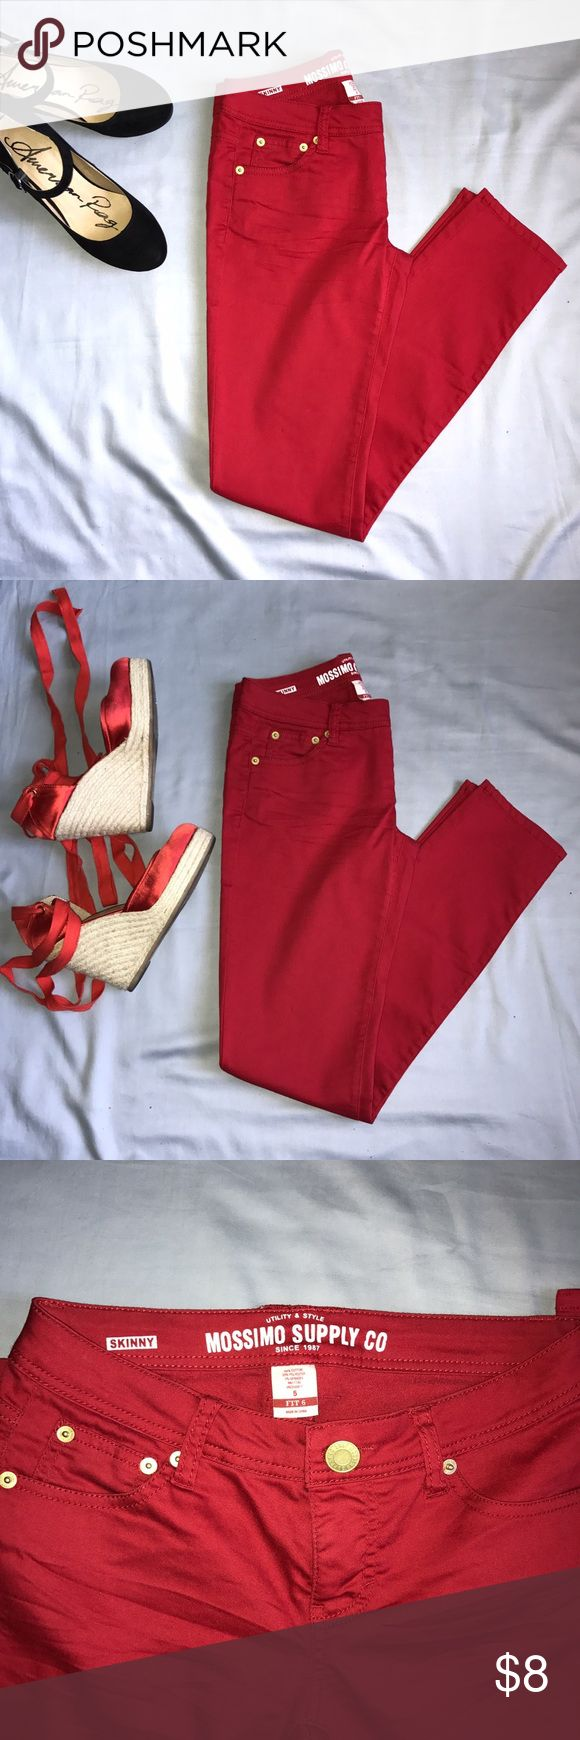 Red Skinny Pants These are very comfortable, but they no longer fit me. They have a good stretch, enough for a contour fit. Looks great against a white t-shirt. Worn a couple of times but in great condition. Mossimo Supply Co Pants Skinny